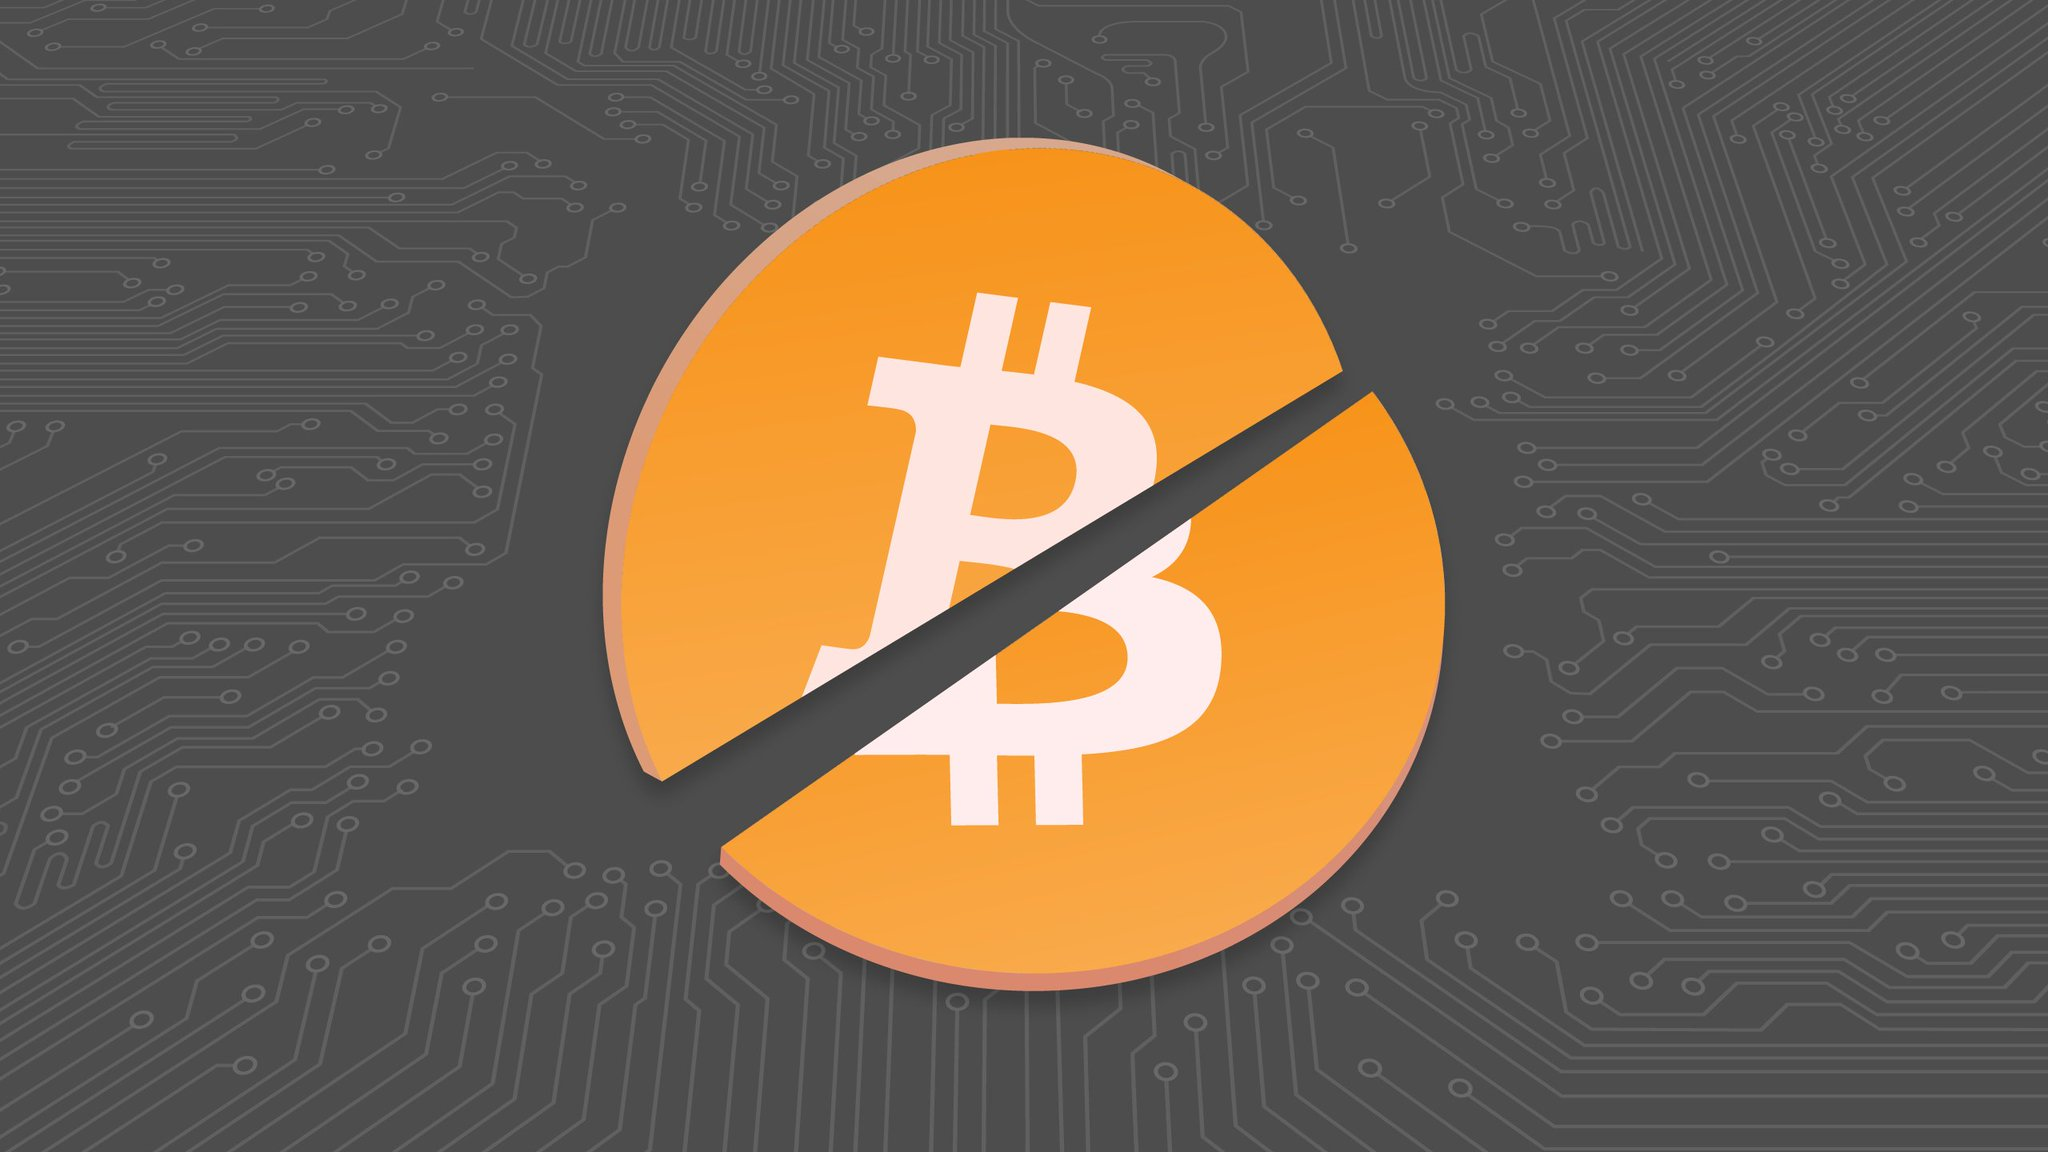 SegWit2x backers cancel plans for bitcoin hard fork https://t.co/fGQxRfHTIU by @romaindillet https://t.co/uDqBENxyE1